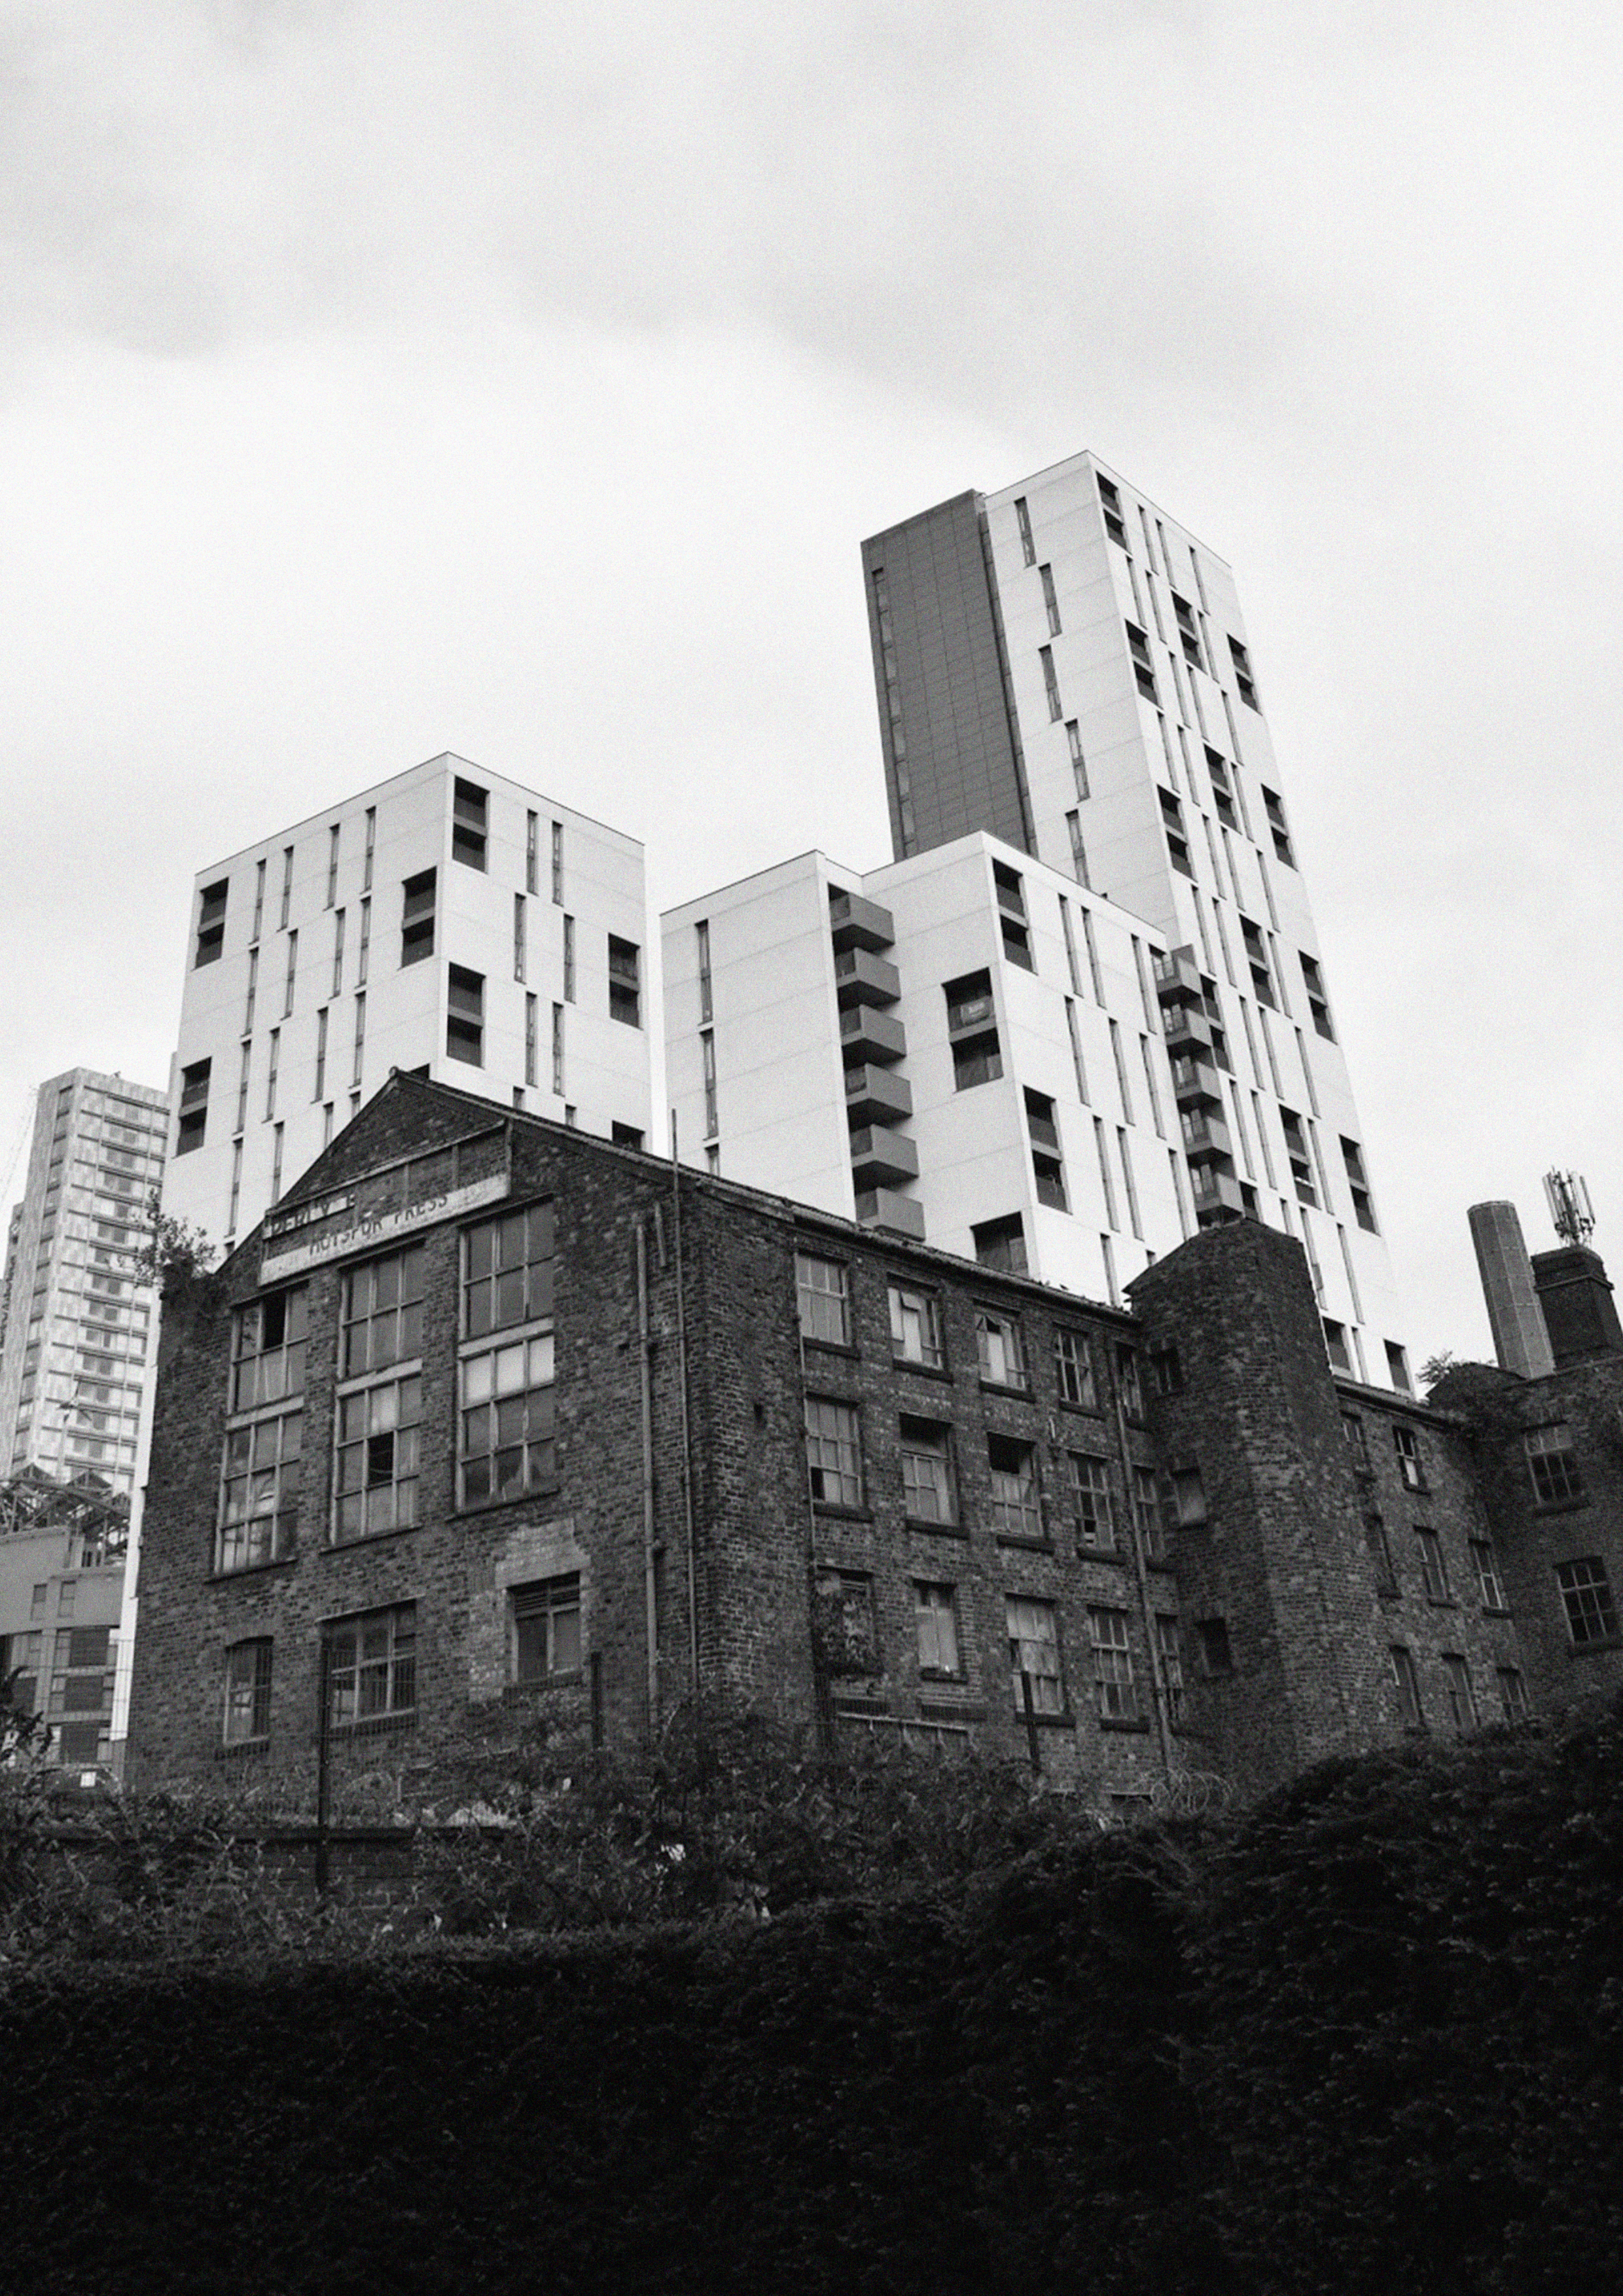 Photograph showing Hotspur Press with tower blocks in the background.